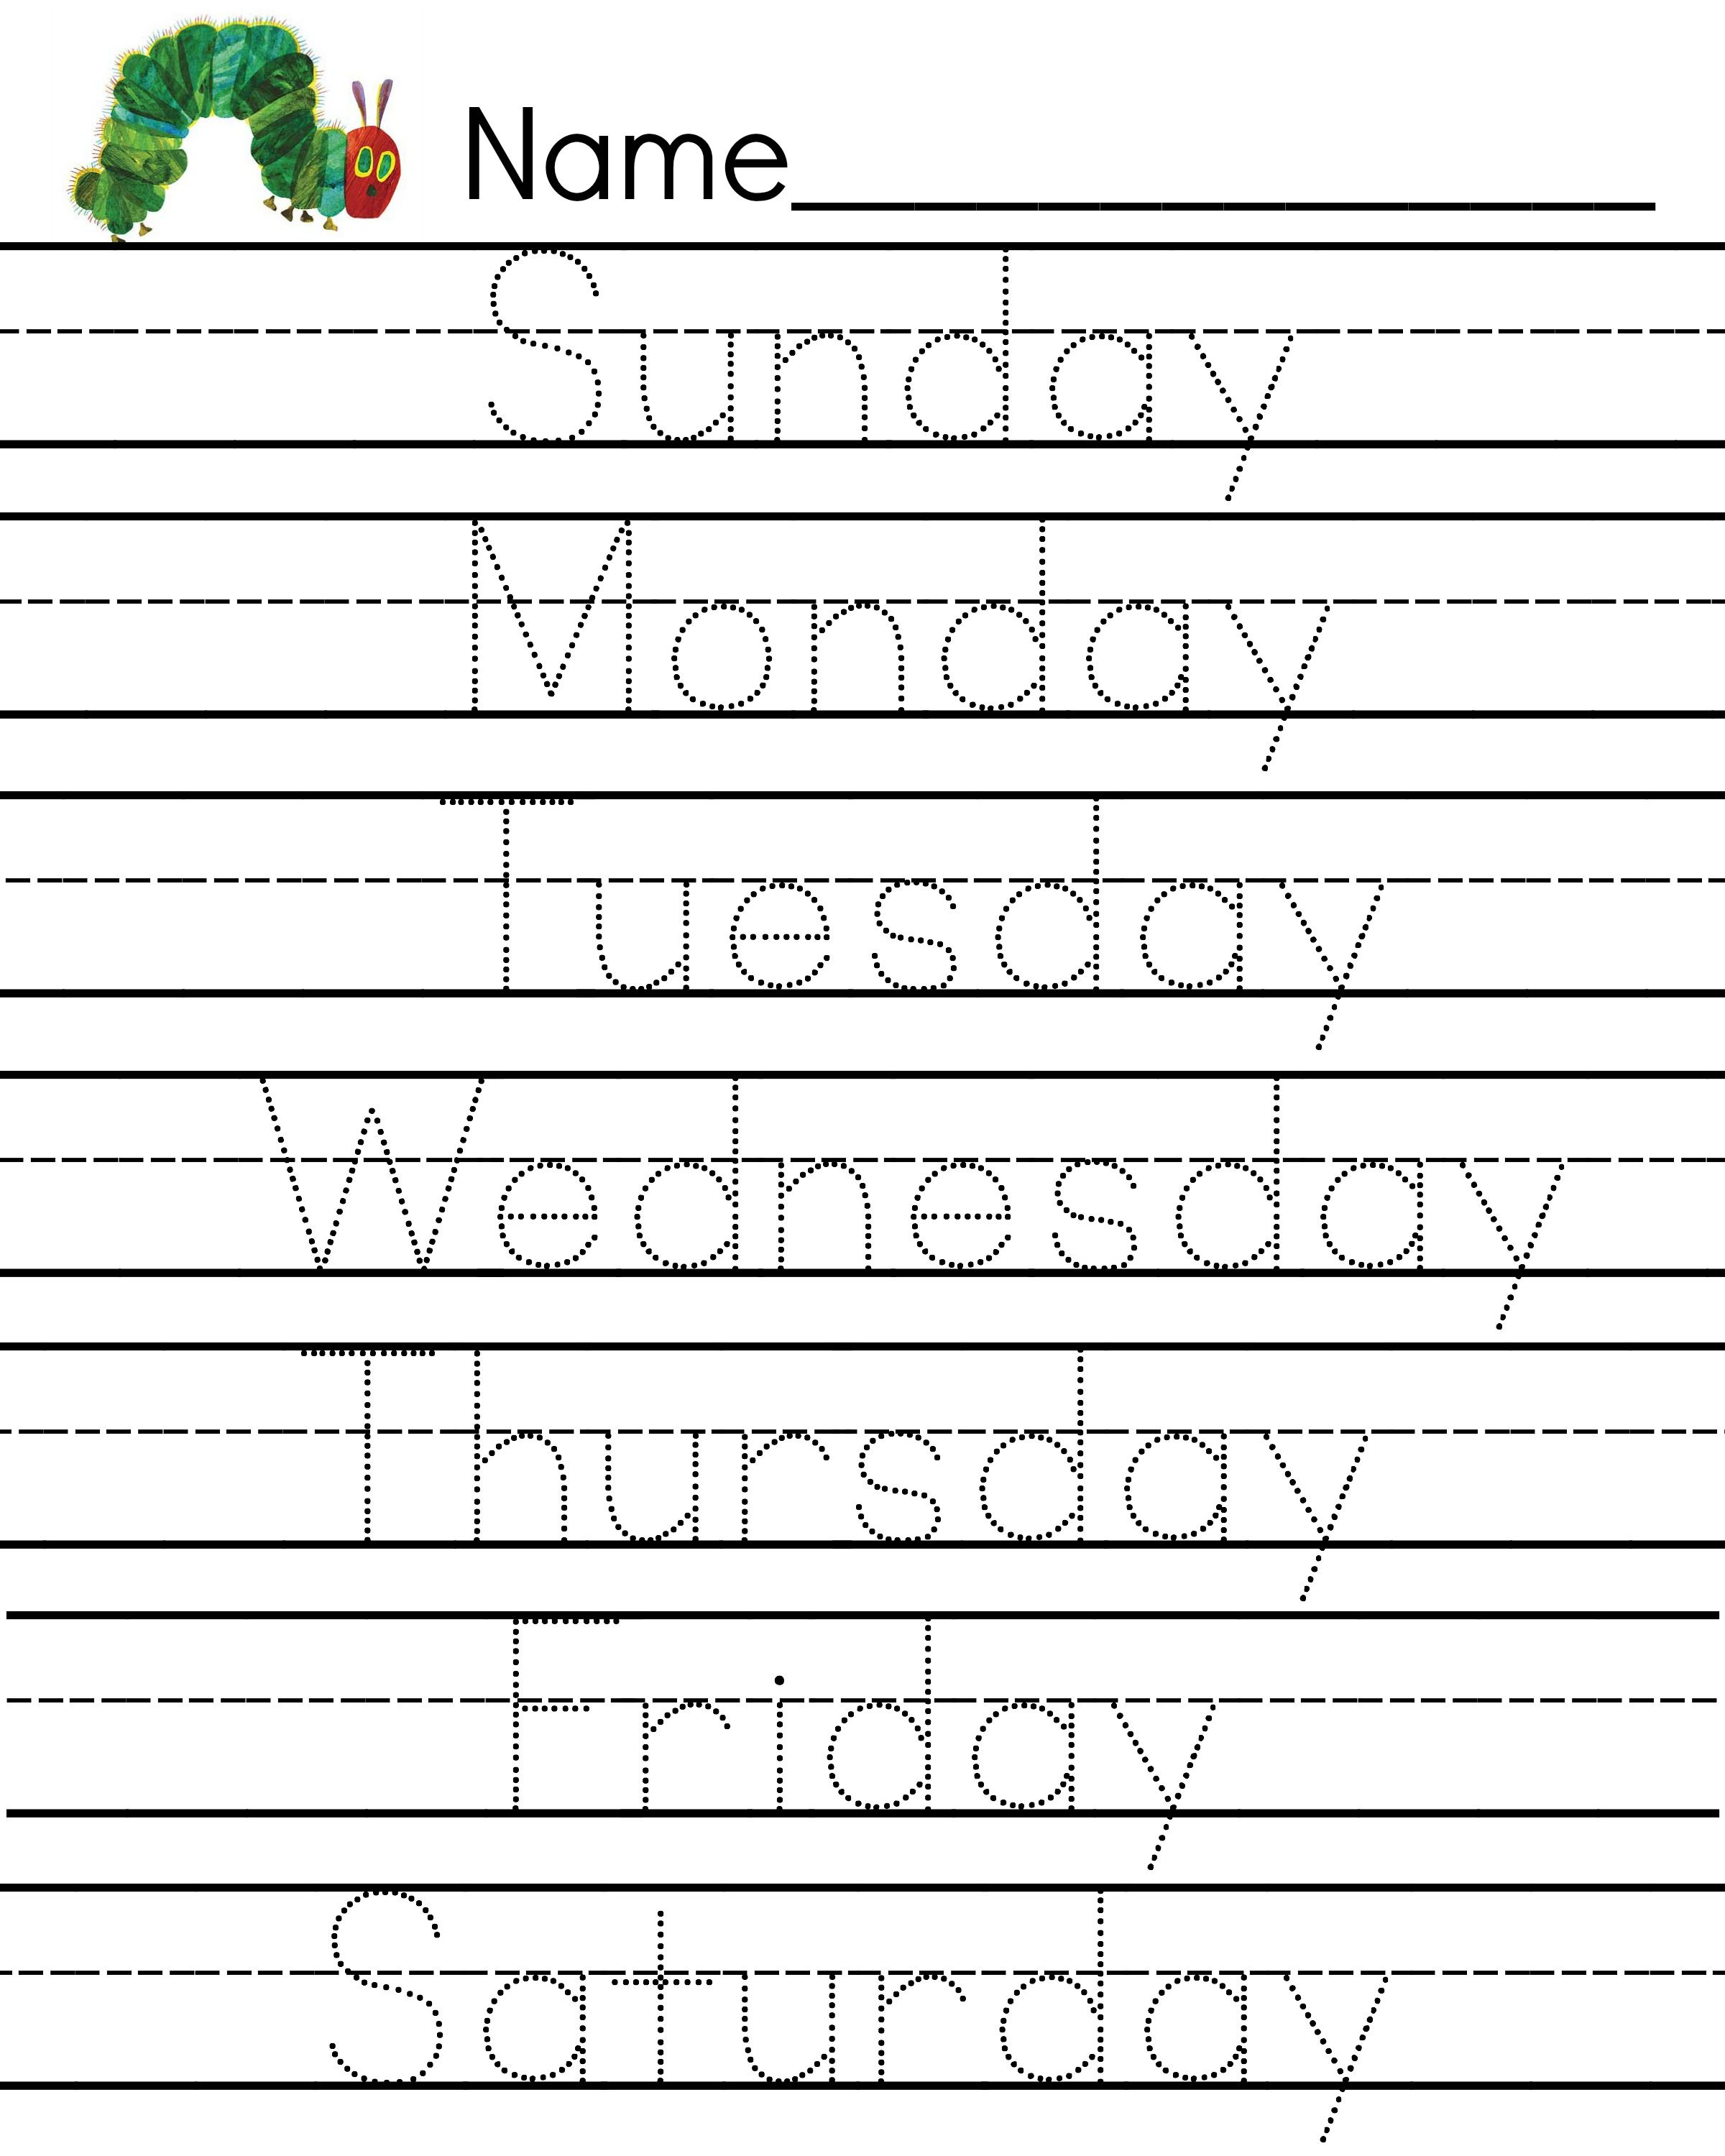 The Very Hungry Caterpillar Days Of The Week Writing Sheet